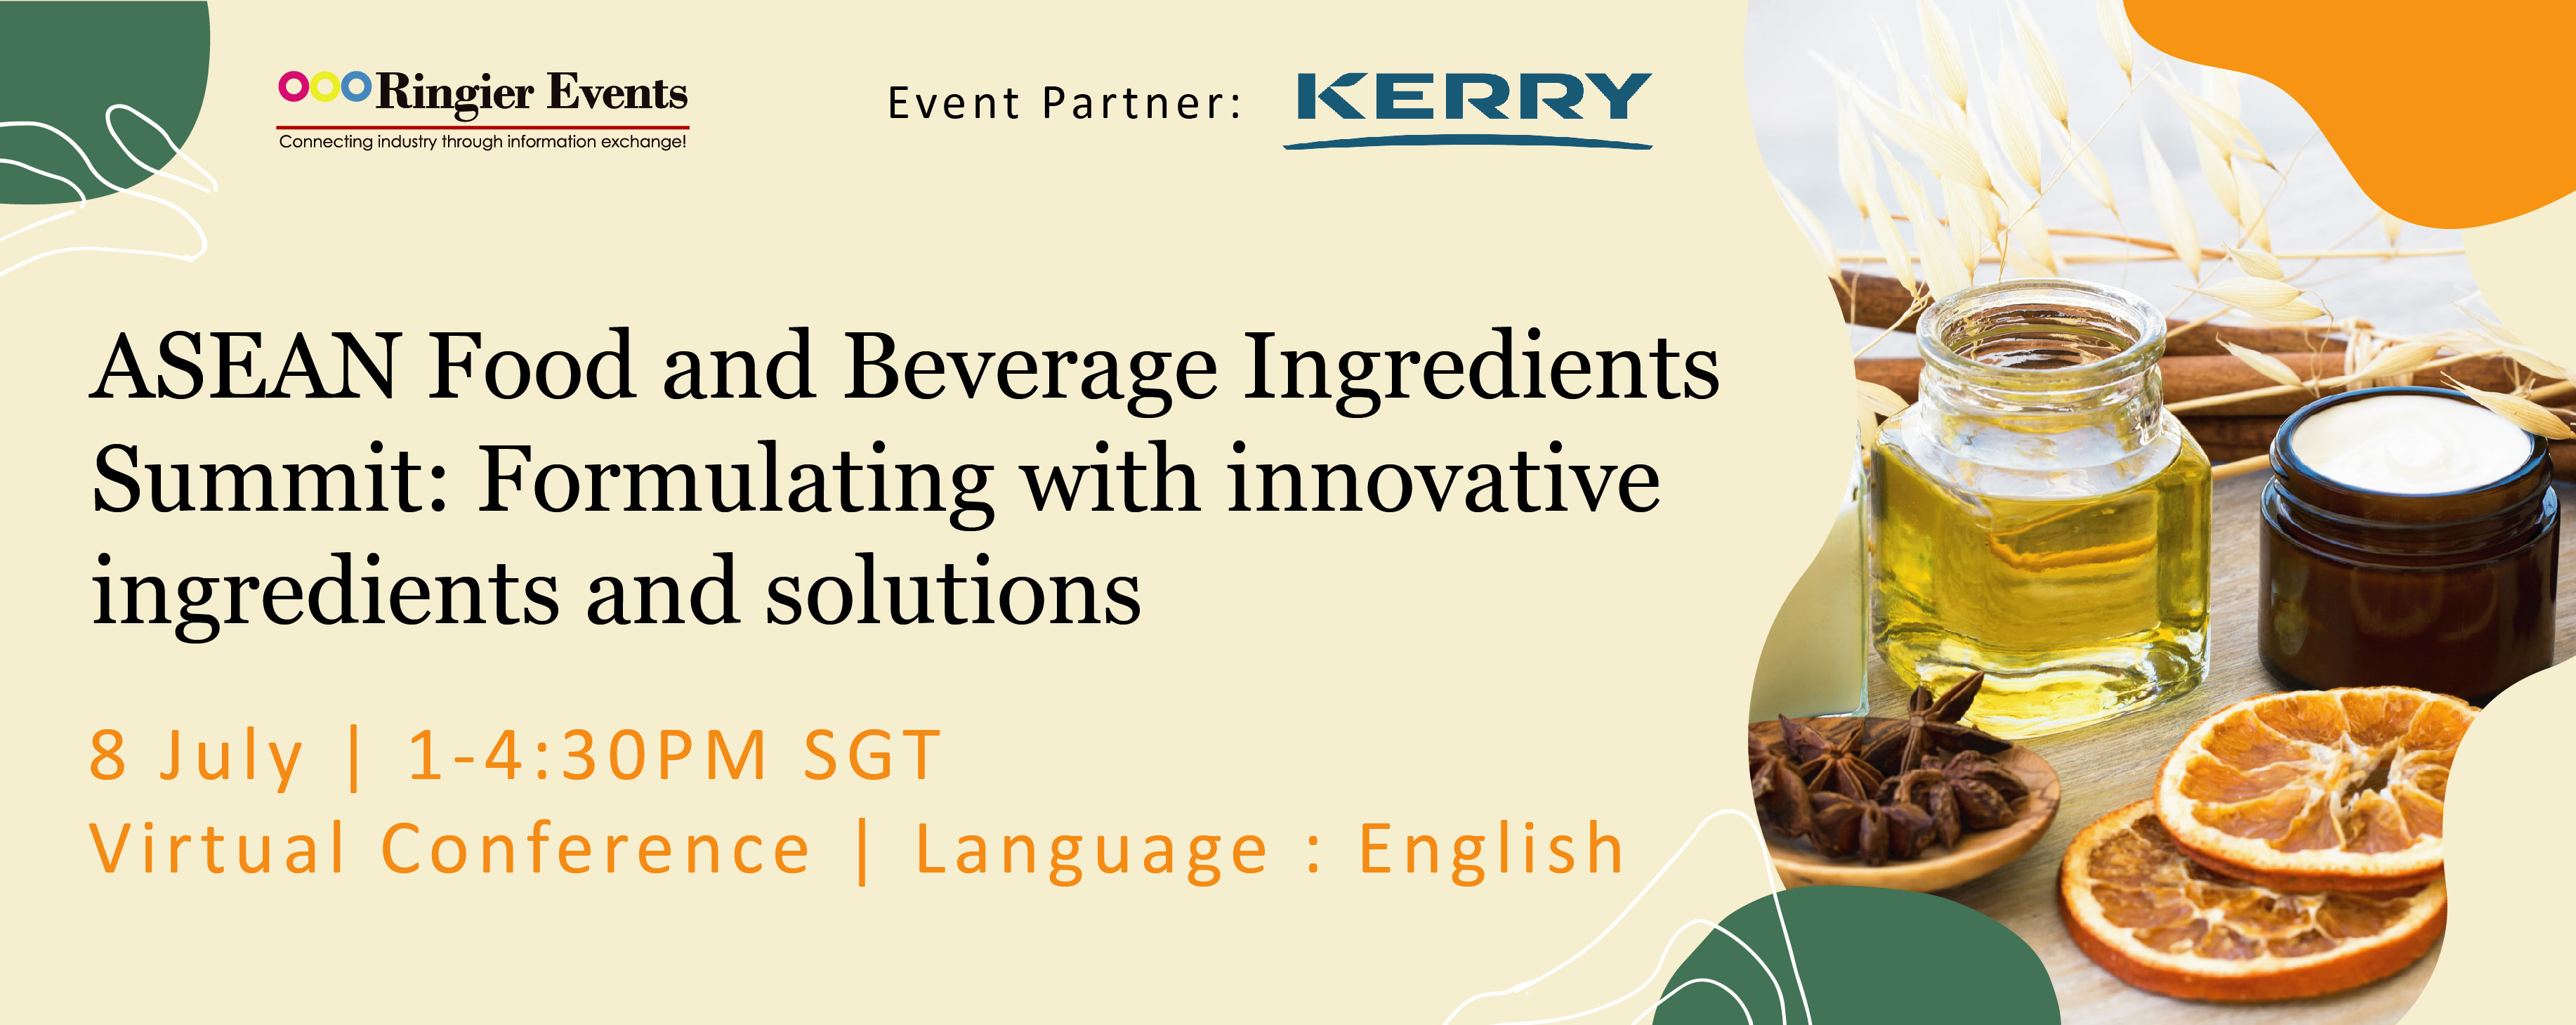 ASEAN Food and Beverage Ingredients Summit: Formulating with innovative ingredients and solutions